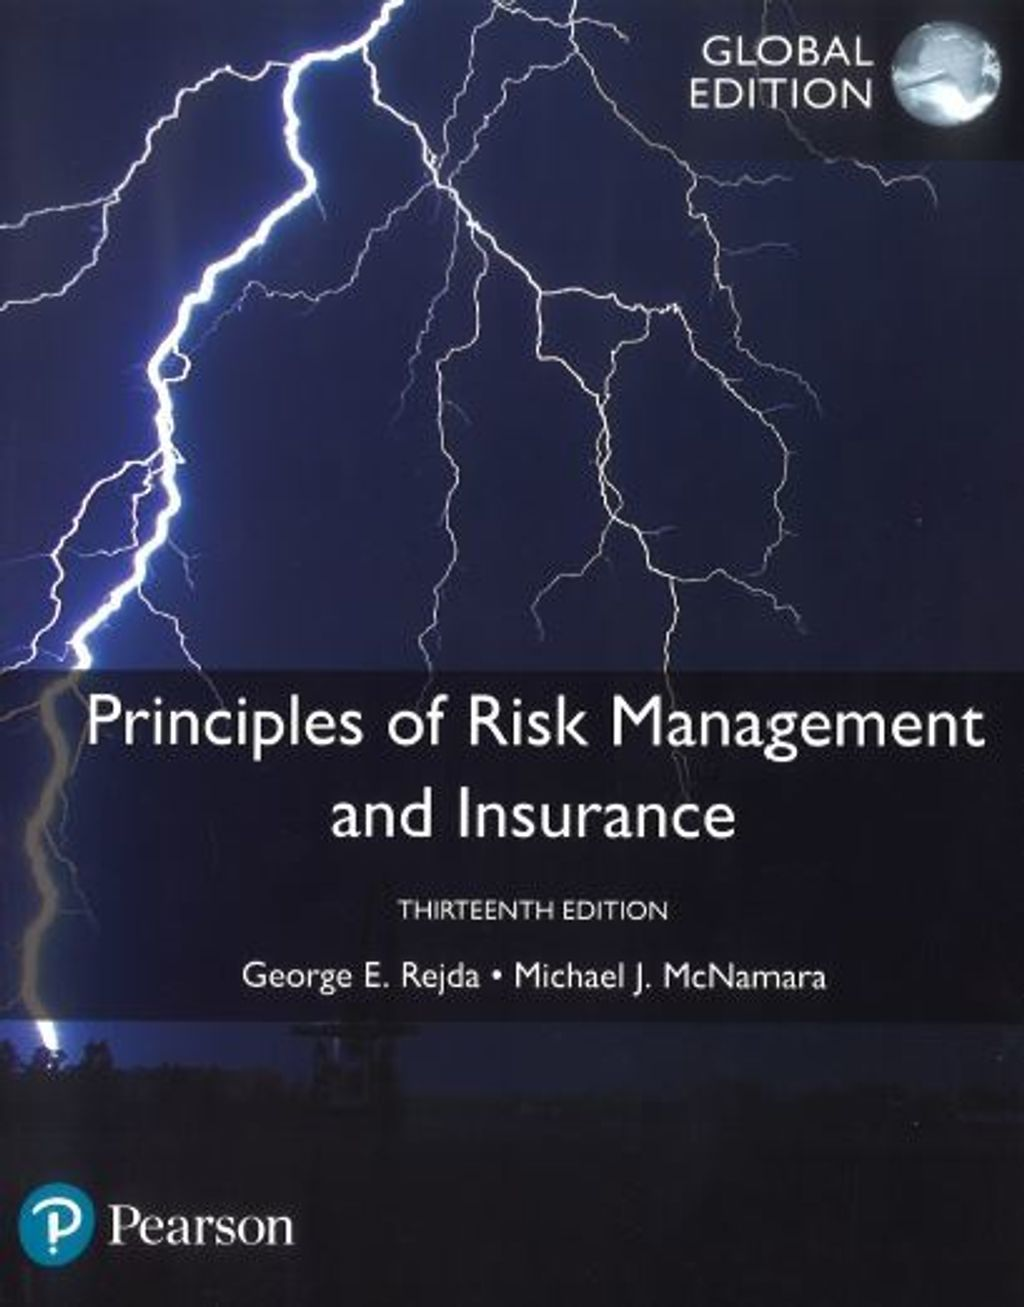 Principles of Risk Management and Insurance_13.JPG